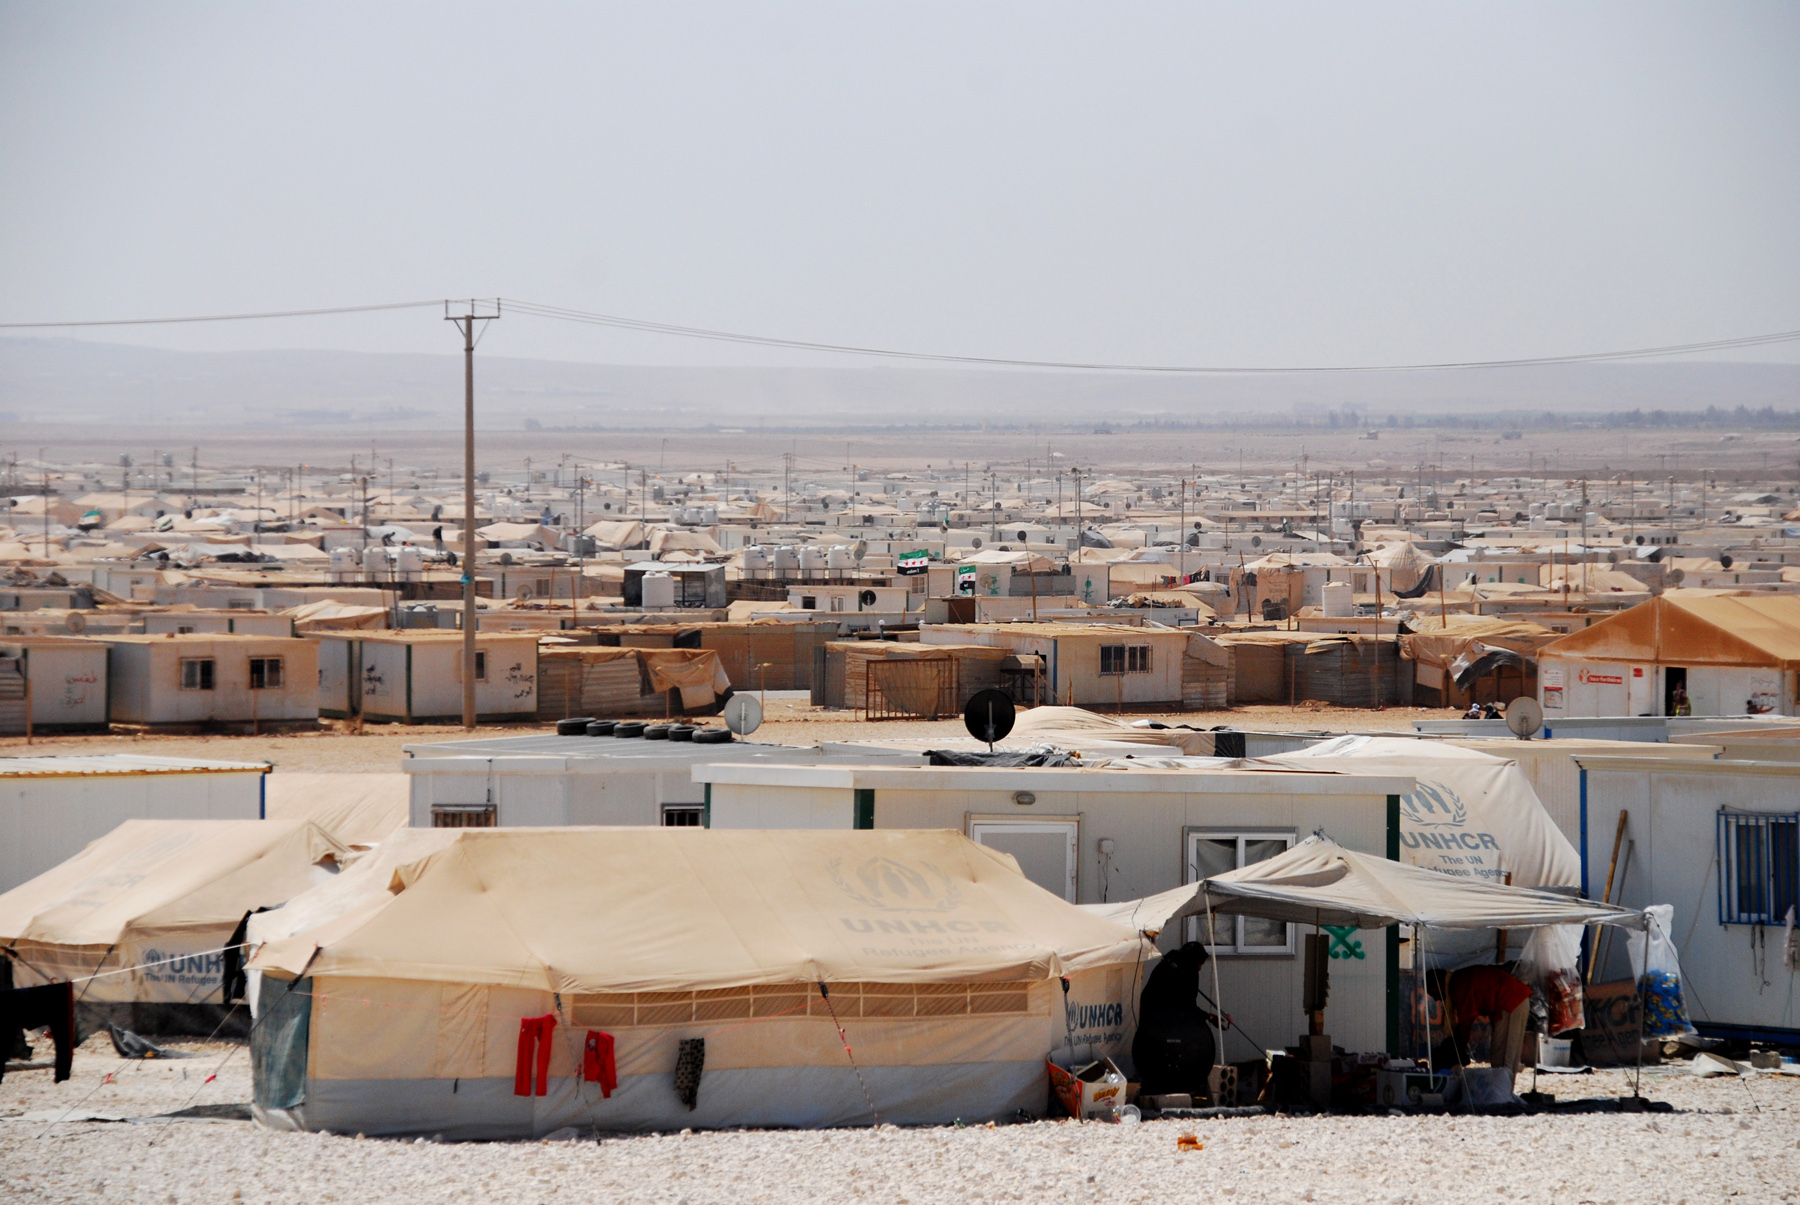 Zaatari refugee camp in Jordan / Andreas Hackl